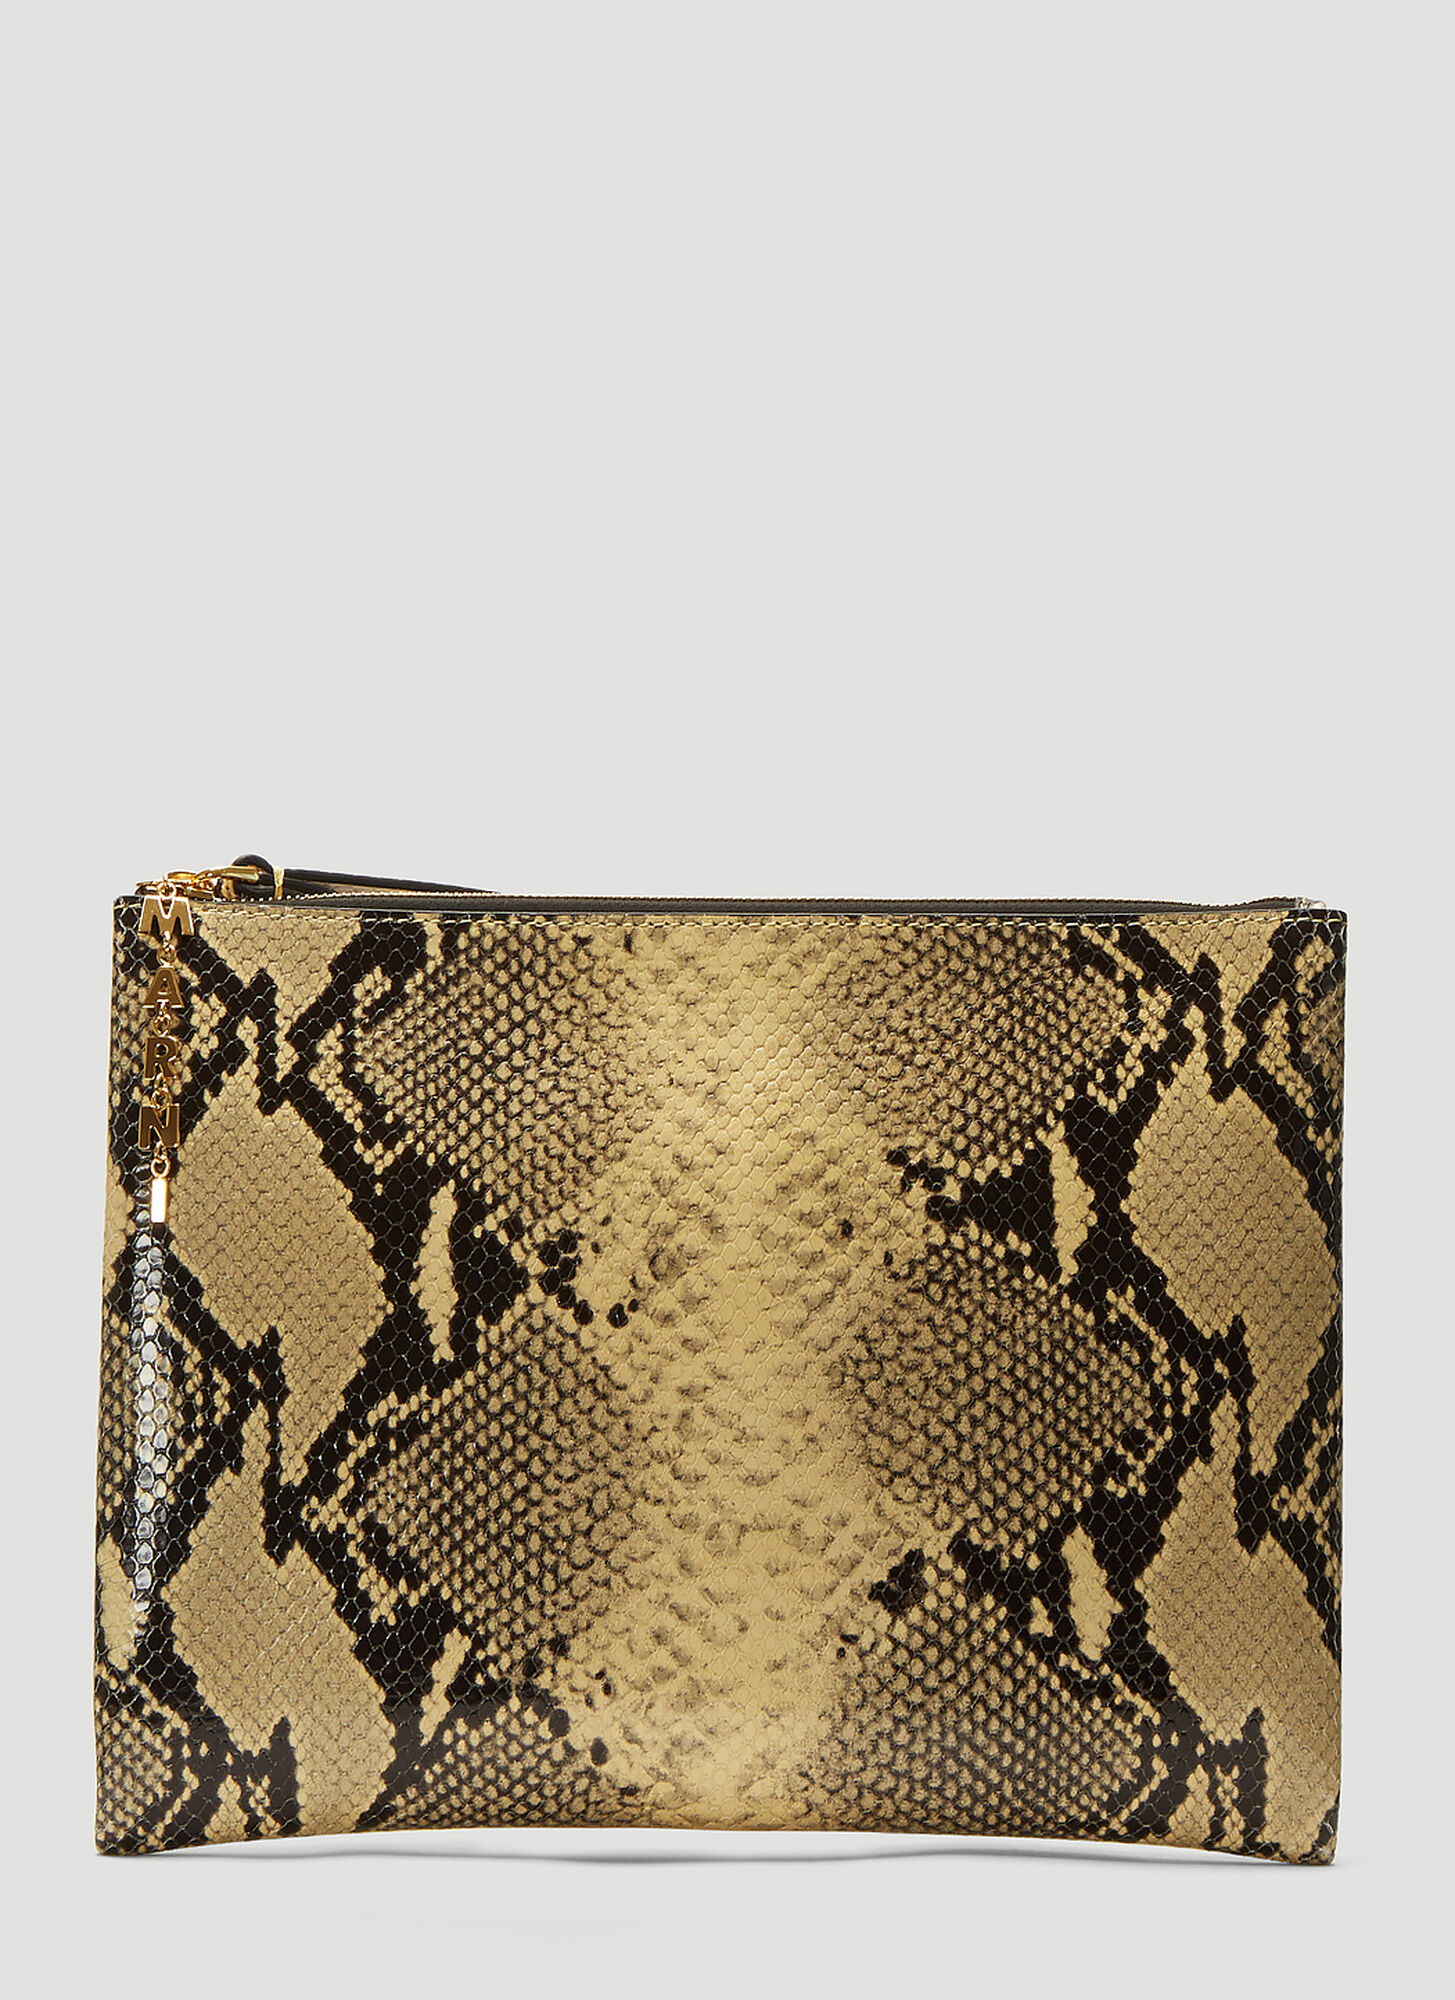 Marni Snake Print Clutch Bag in Beige